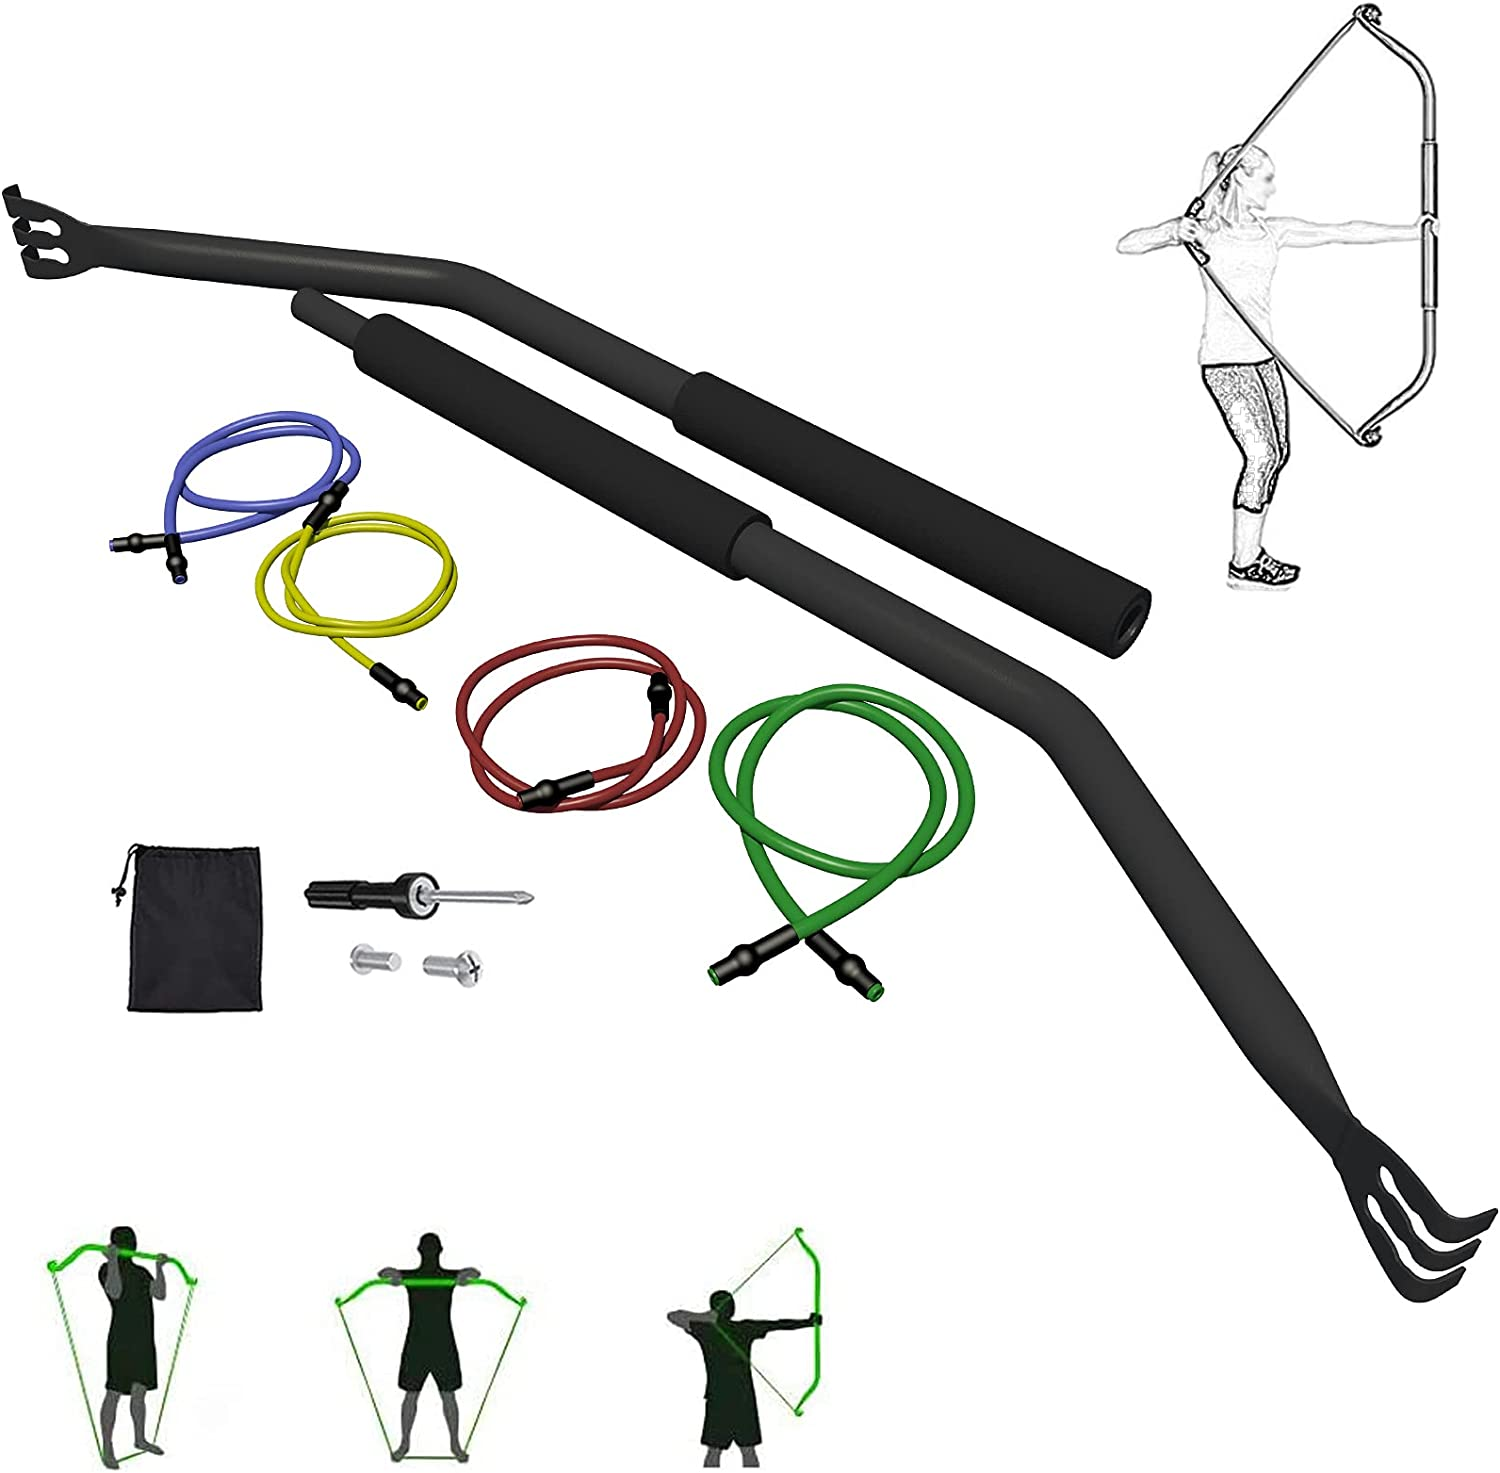 EKN Bow Portable Resistance Bands 4 Equipment R NEW before selling Year-end gift Fitness Compact